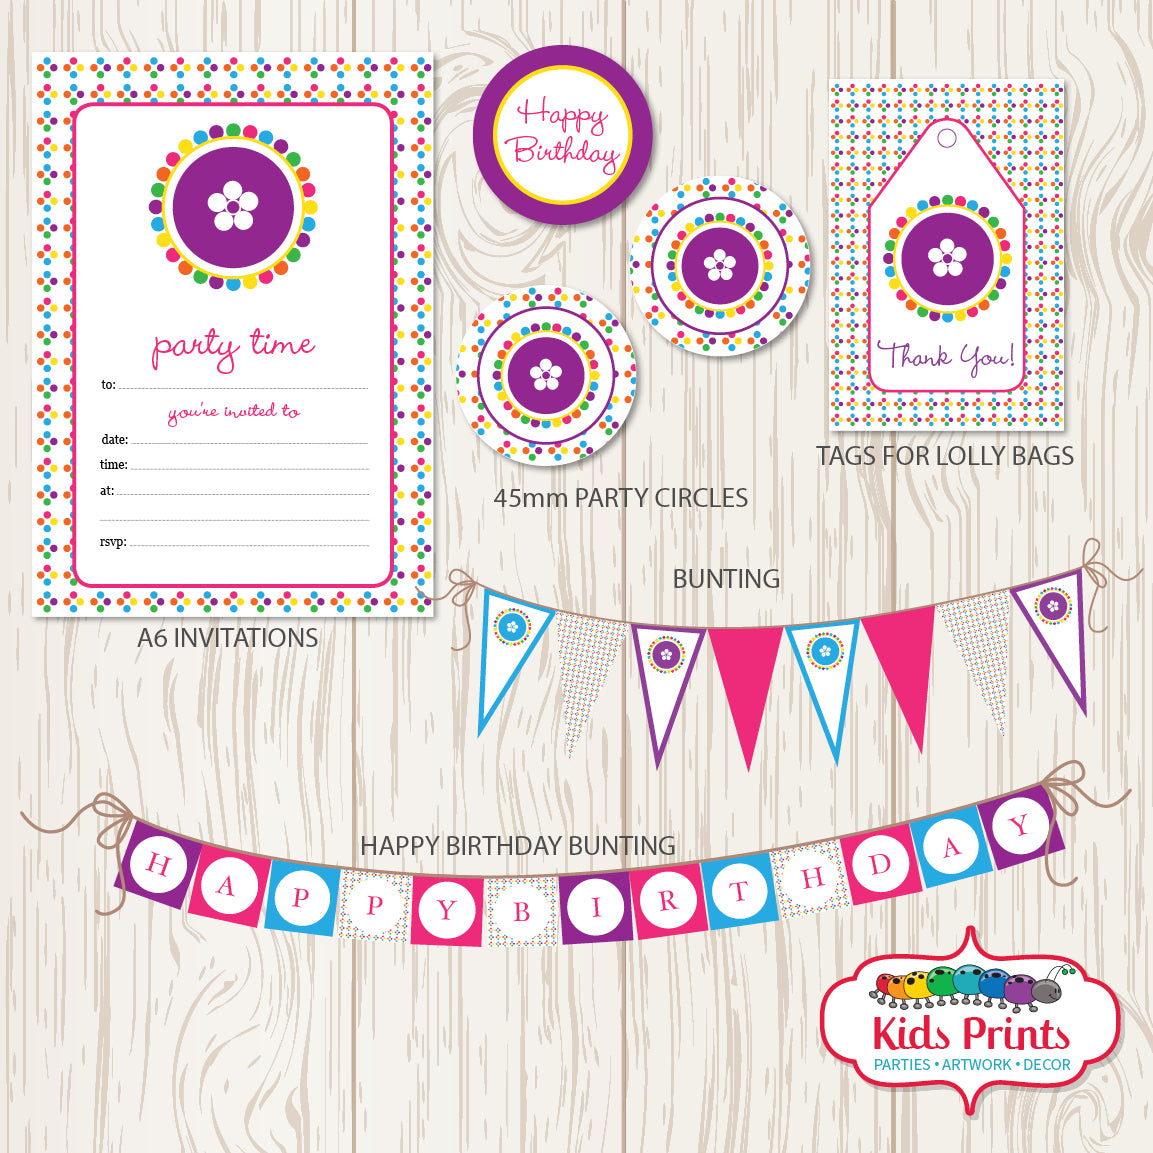 Coloured Dots Party | Printable Stationery - Kids Prints Online - kids wall art printable - nursery art printable - printable invitations - digital invitations - kids wall art - kids prints